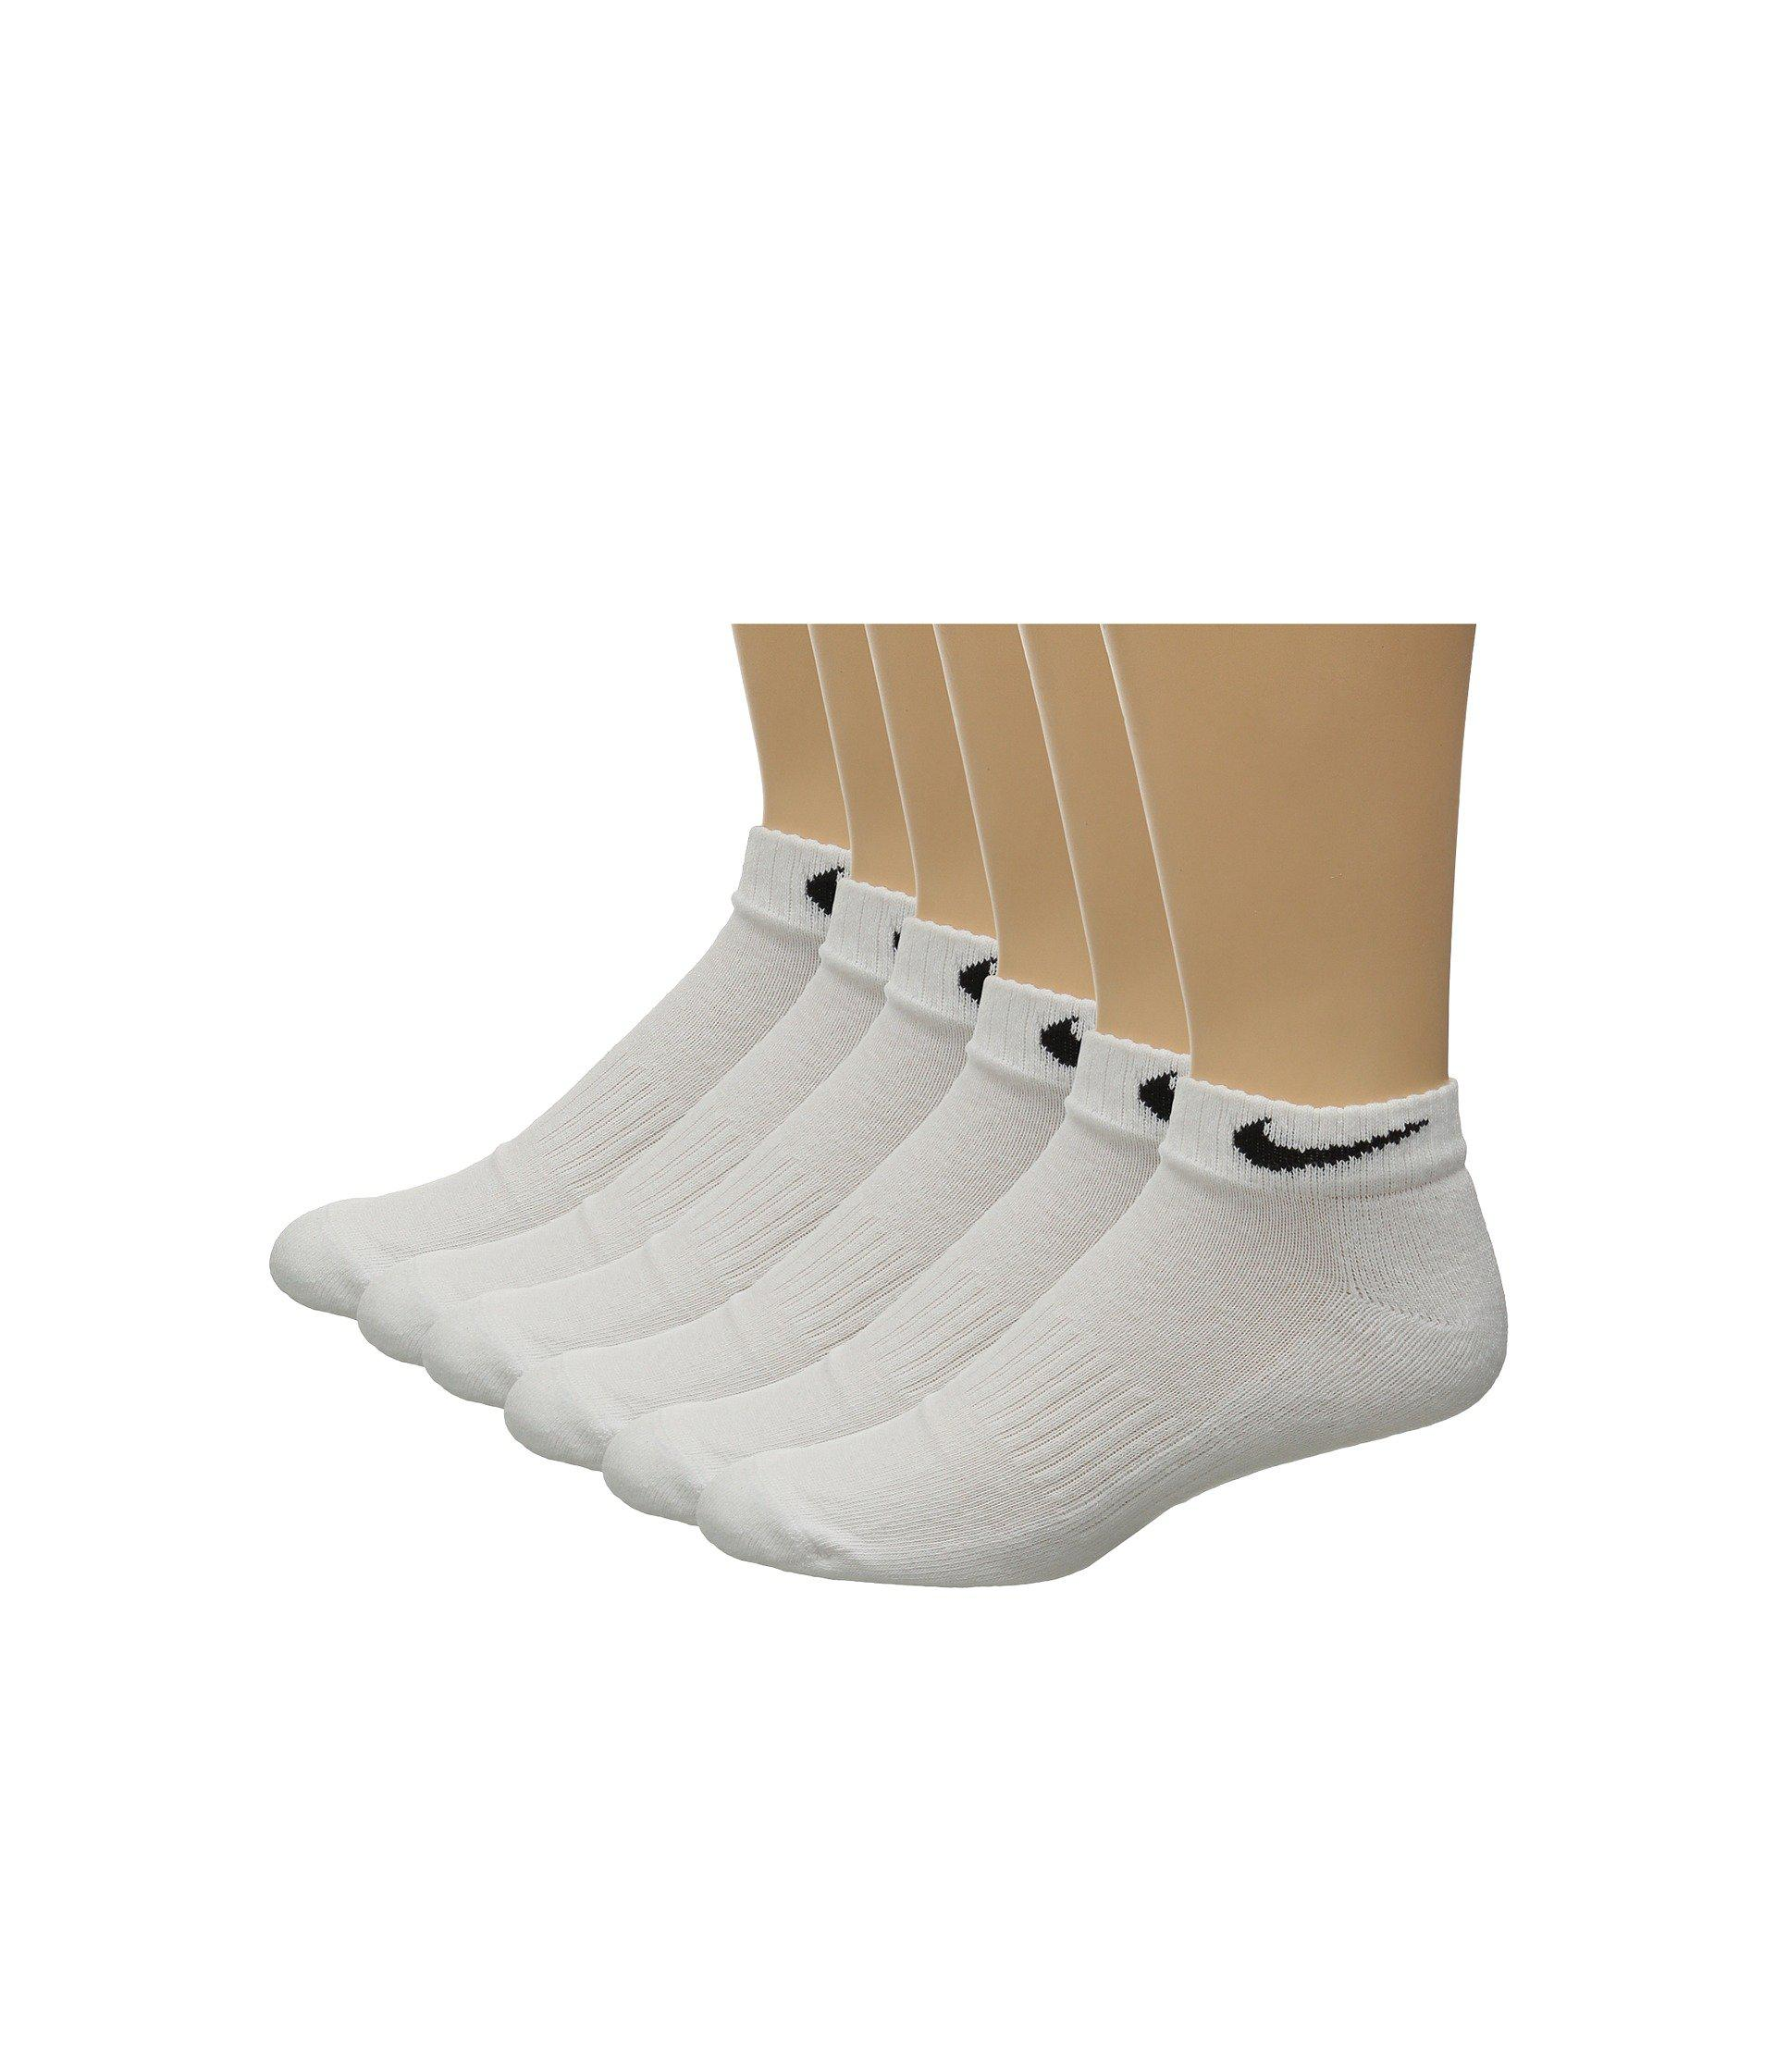 2e2534bd3 Lyst - Nike Band Cotton Low Cut 6-pack (black white) Low Cut Socks ...